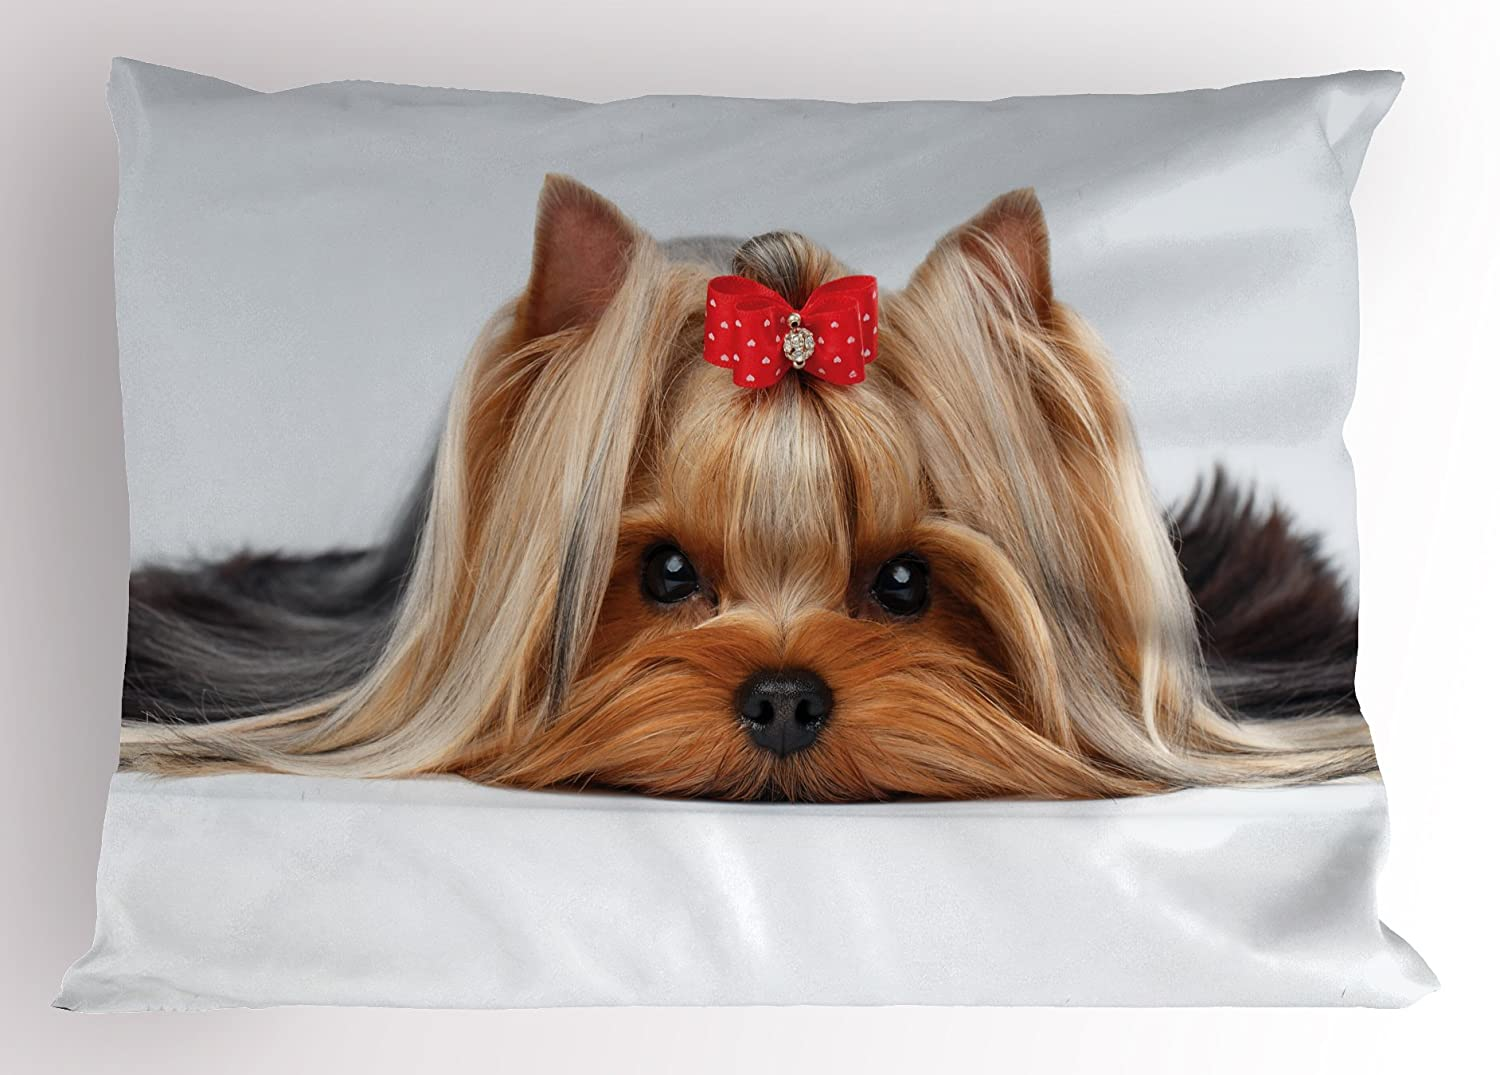 Yorkie Pillow Sham by Ambesonne、Closeup Of Lying Yorkshire Terrier with a cuteリボンYorkie Love犬の肖像、装飾標準Kingサイズ印刷枕カバー、ブラウンホワイト 36